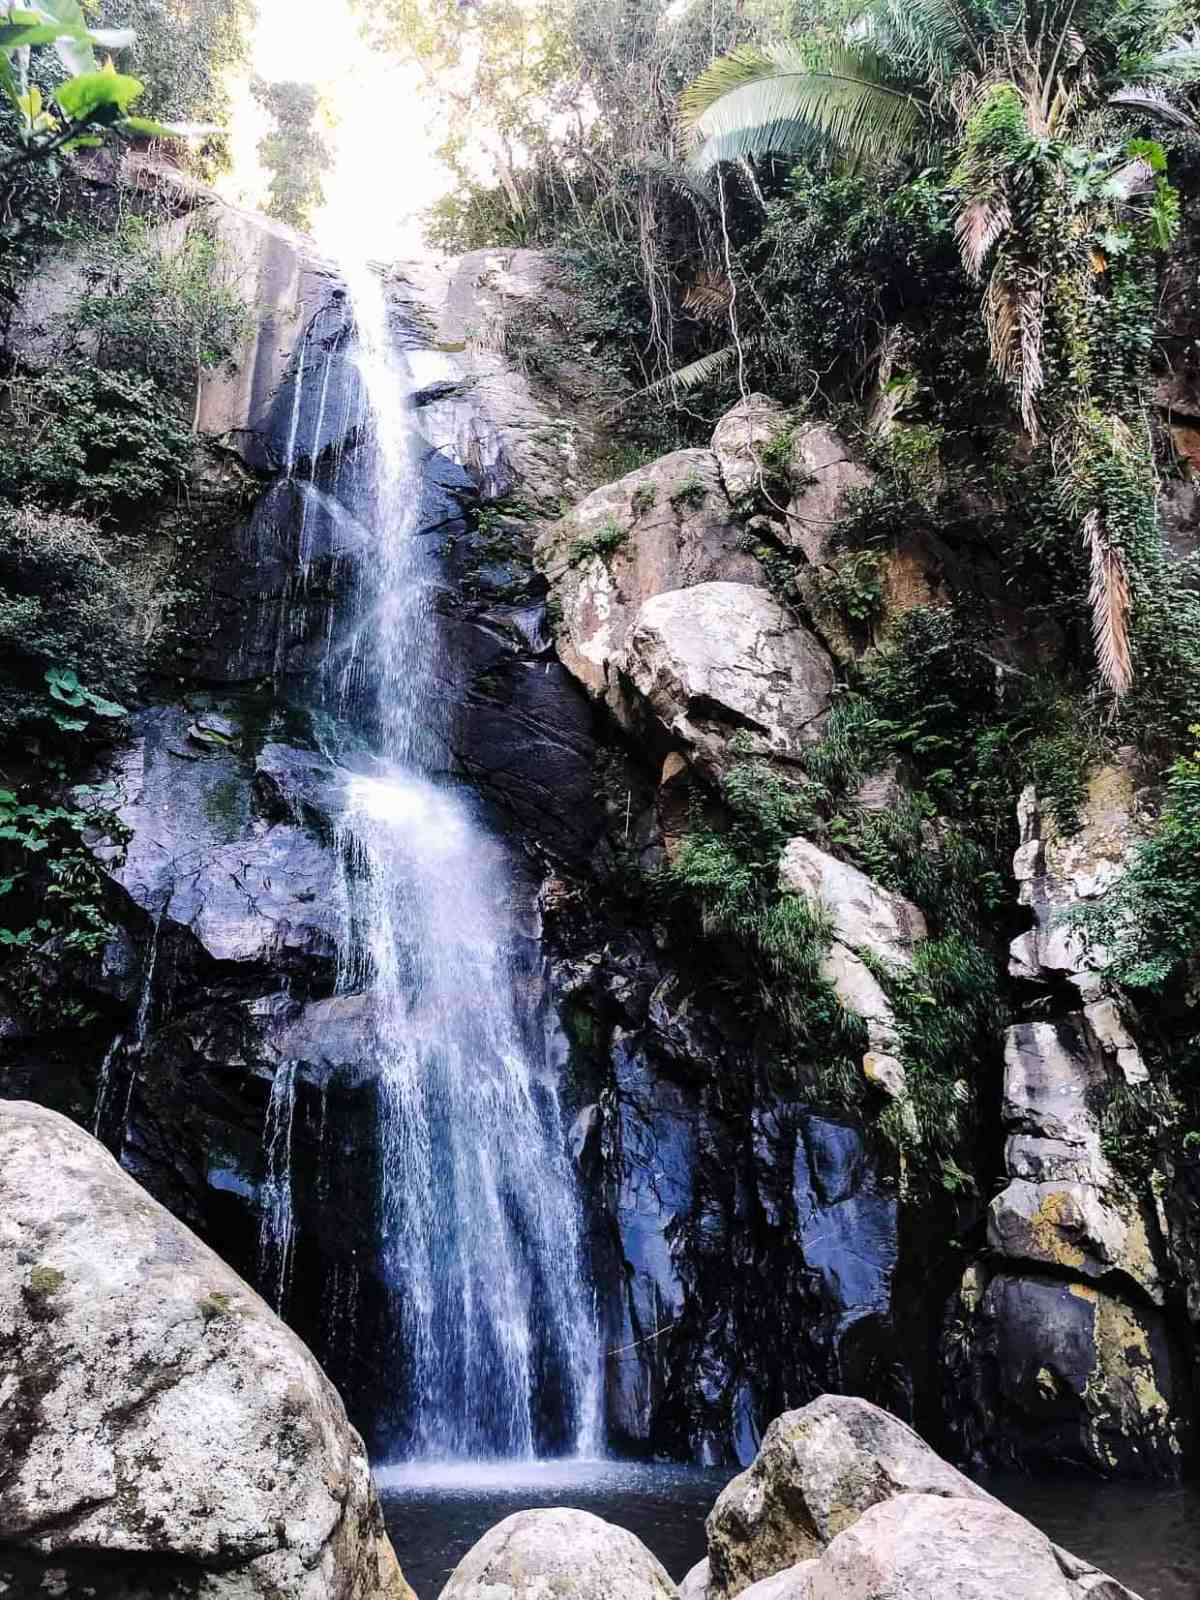 The Yelapa Waterfall is one of many excursions in Mexico with Princess Cruises.